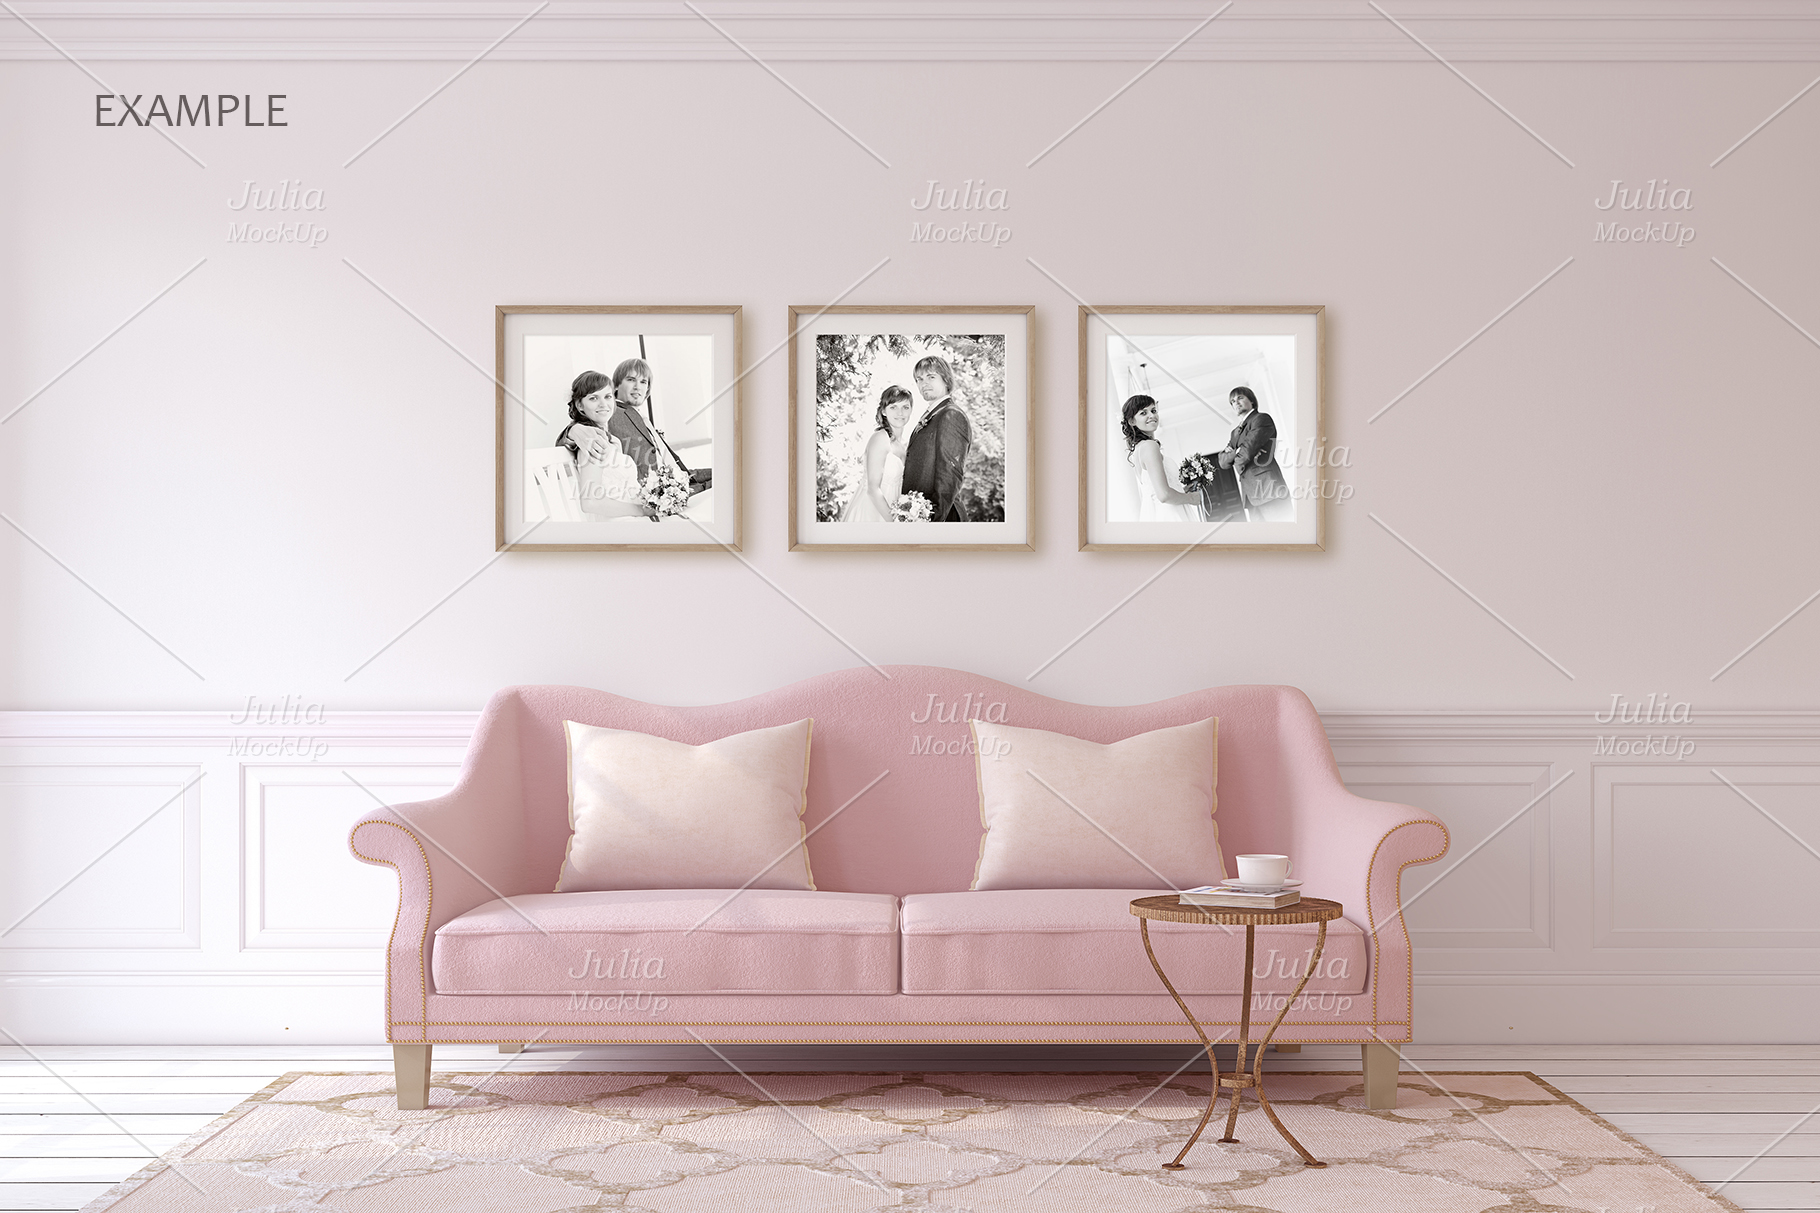 Pink Interiors. Frames&Canvases Mockup. example image 6